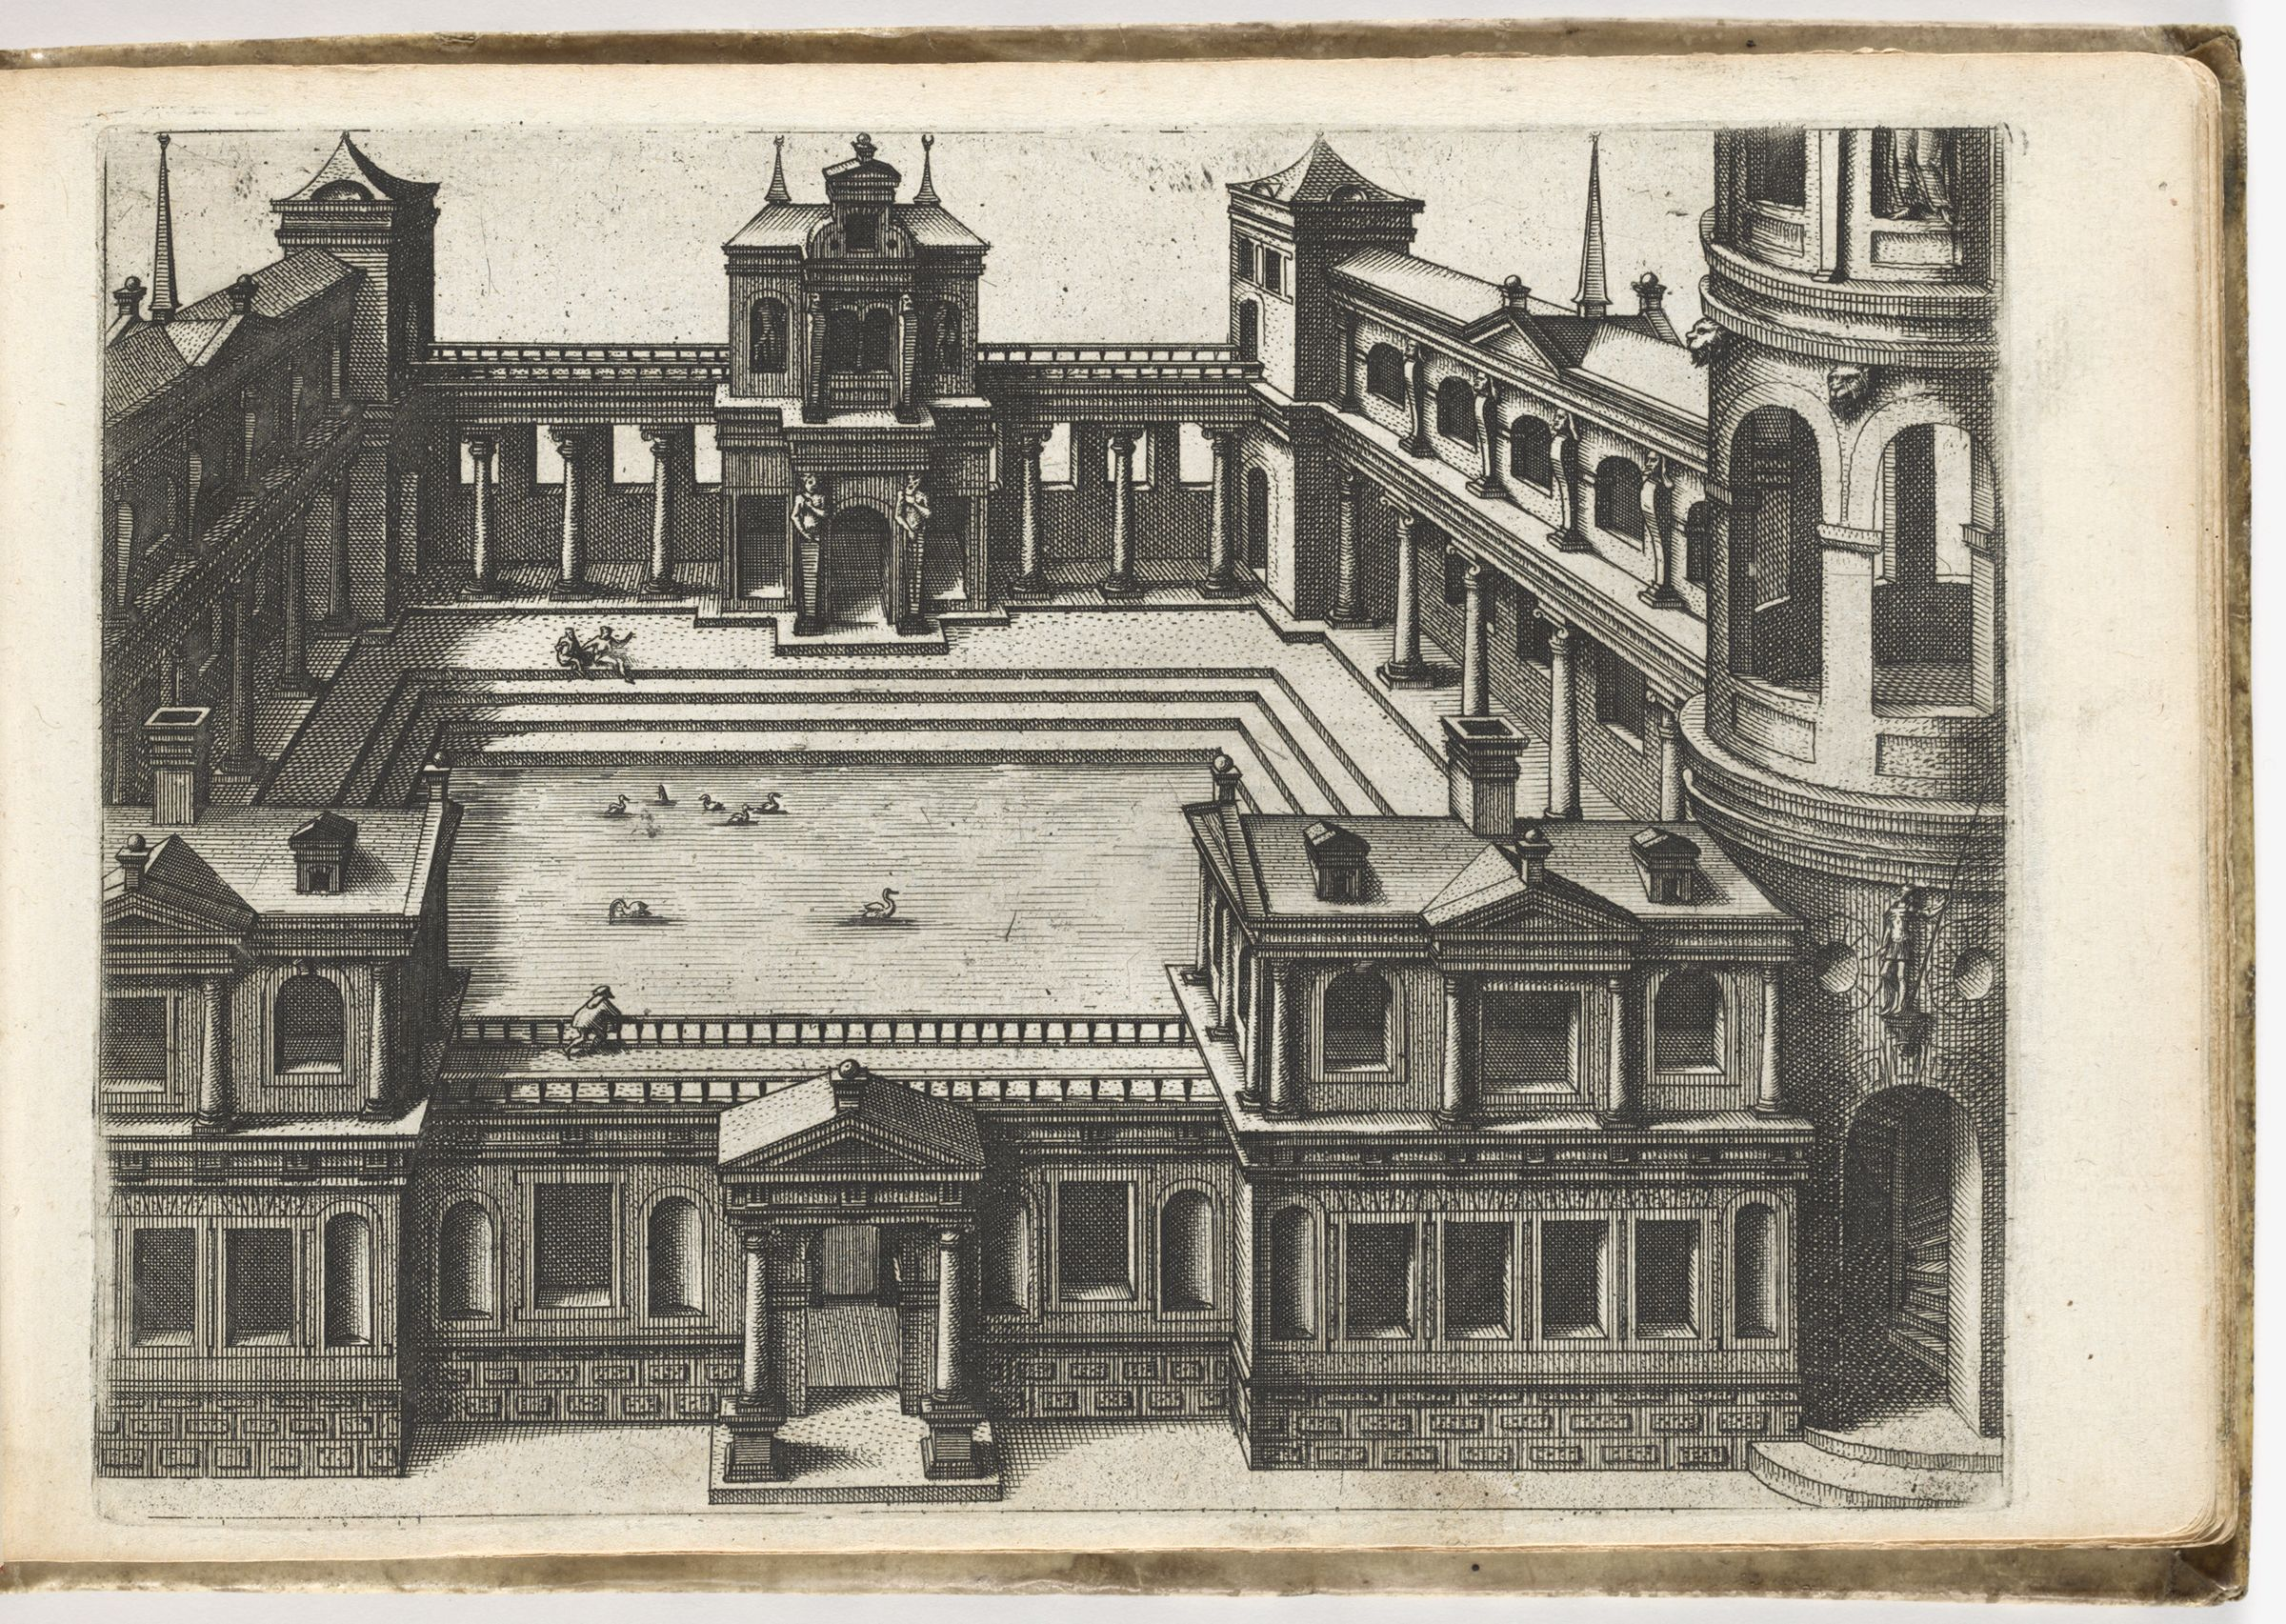 View Into A Palace Courtyard With Ducks In A Pond (N.h.)